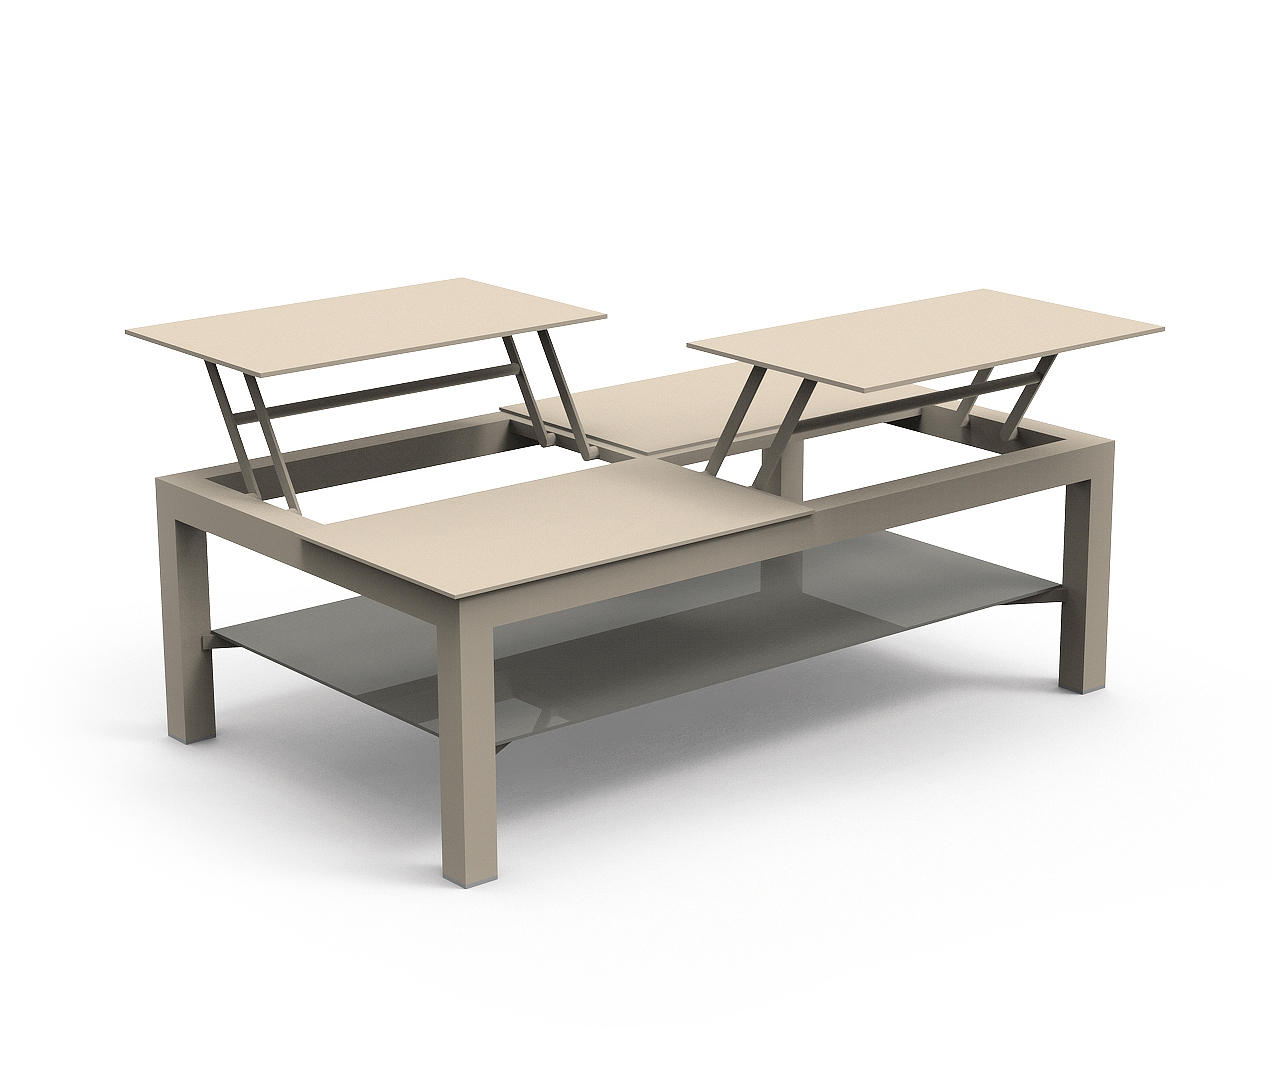 Chic Opening Coffee Table Coffee Tables From Talenti Architonic